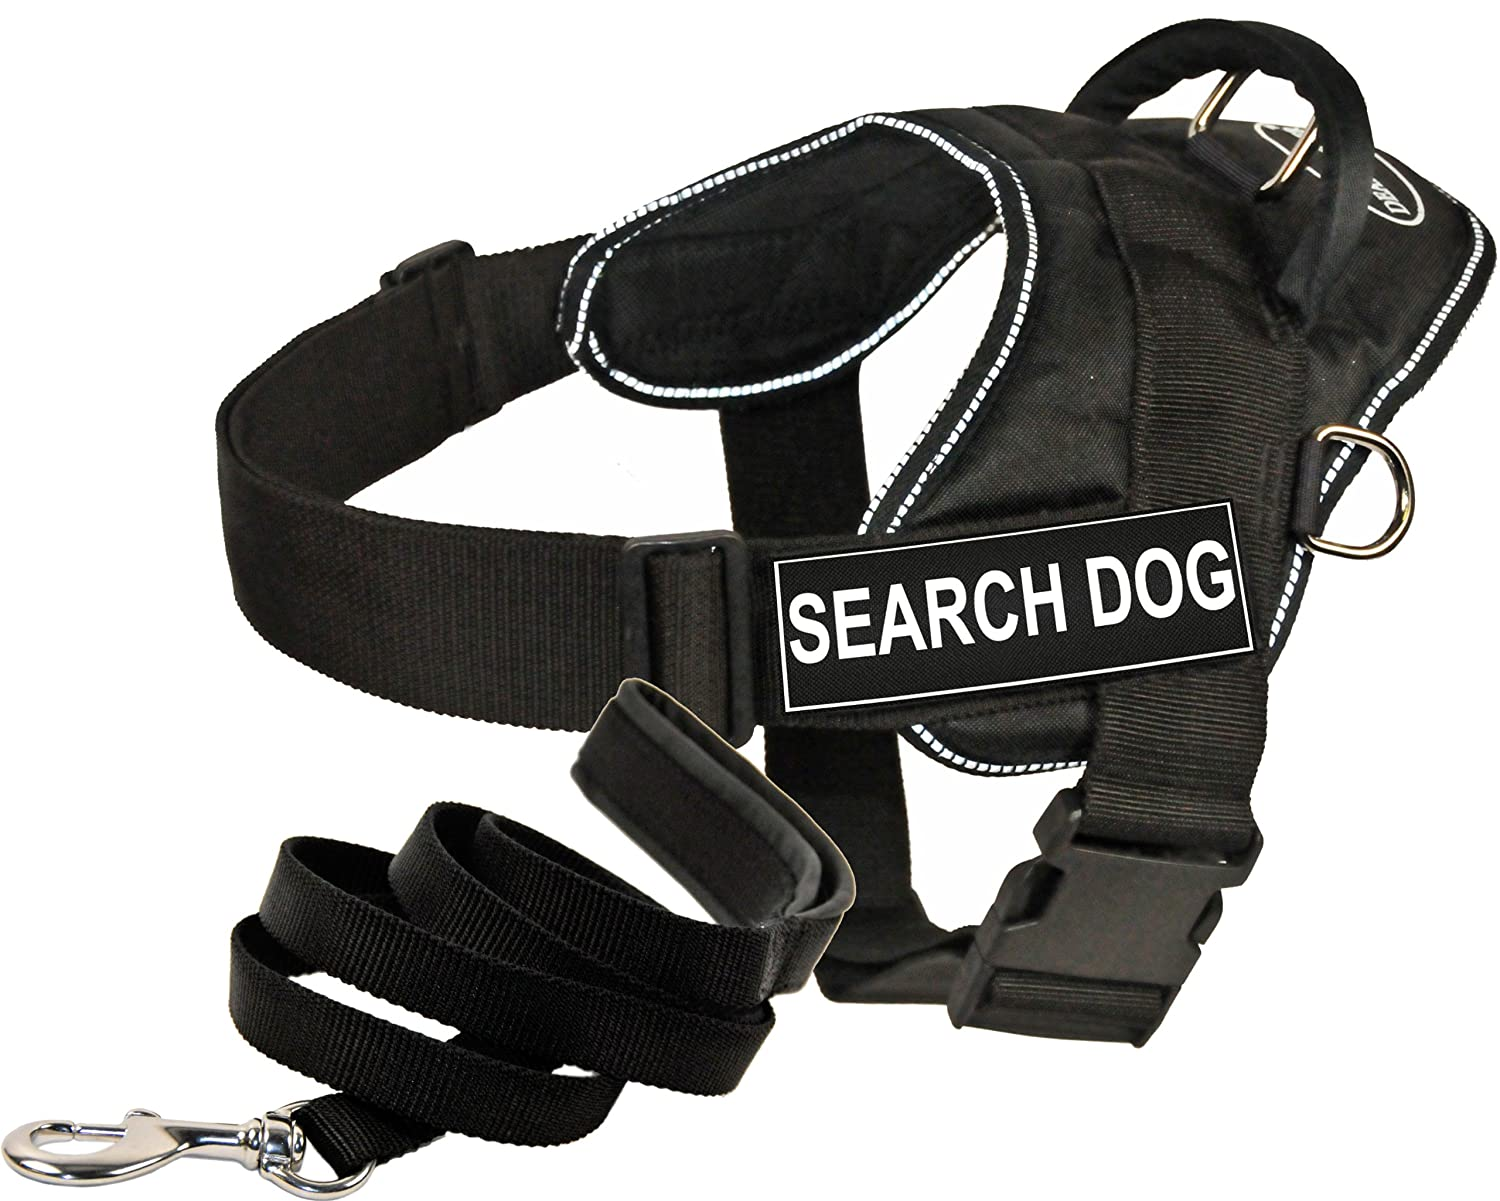 Dean and Tyler Bundle One DT Fun Works  Harness, Search Dog, Reflective, Medium (28  34 ) + One Padded Puppy  Leash, 6 FT Stainless Snap Black